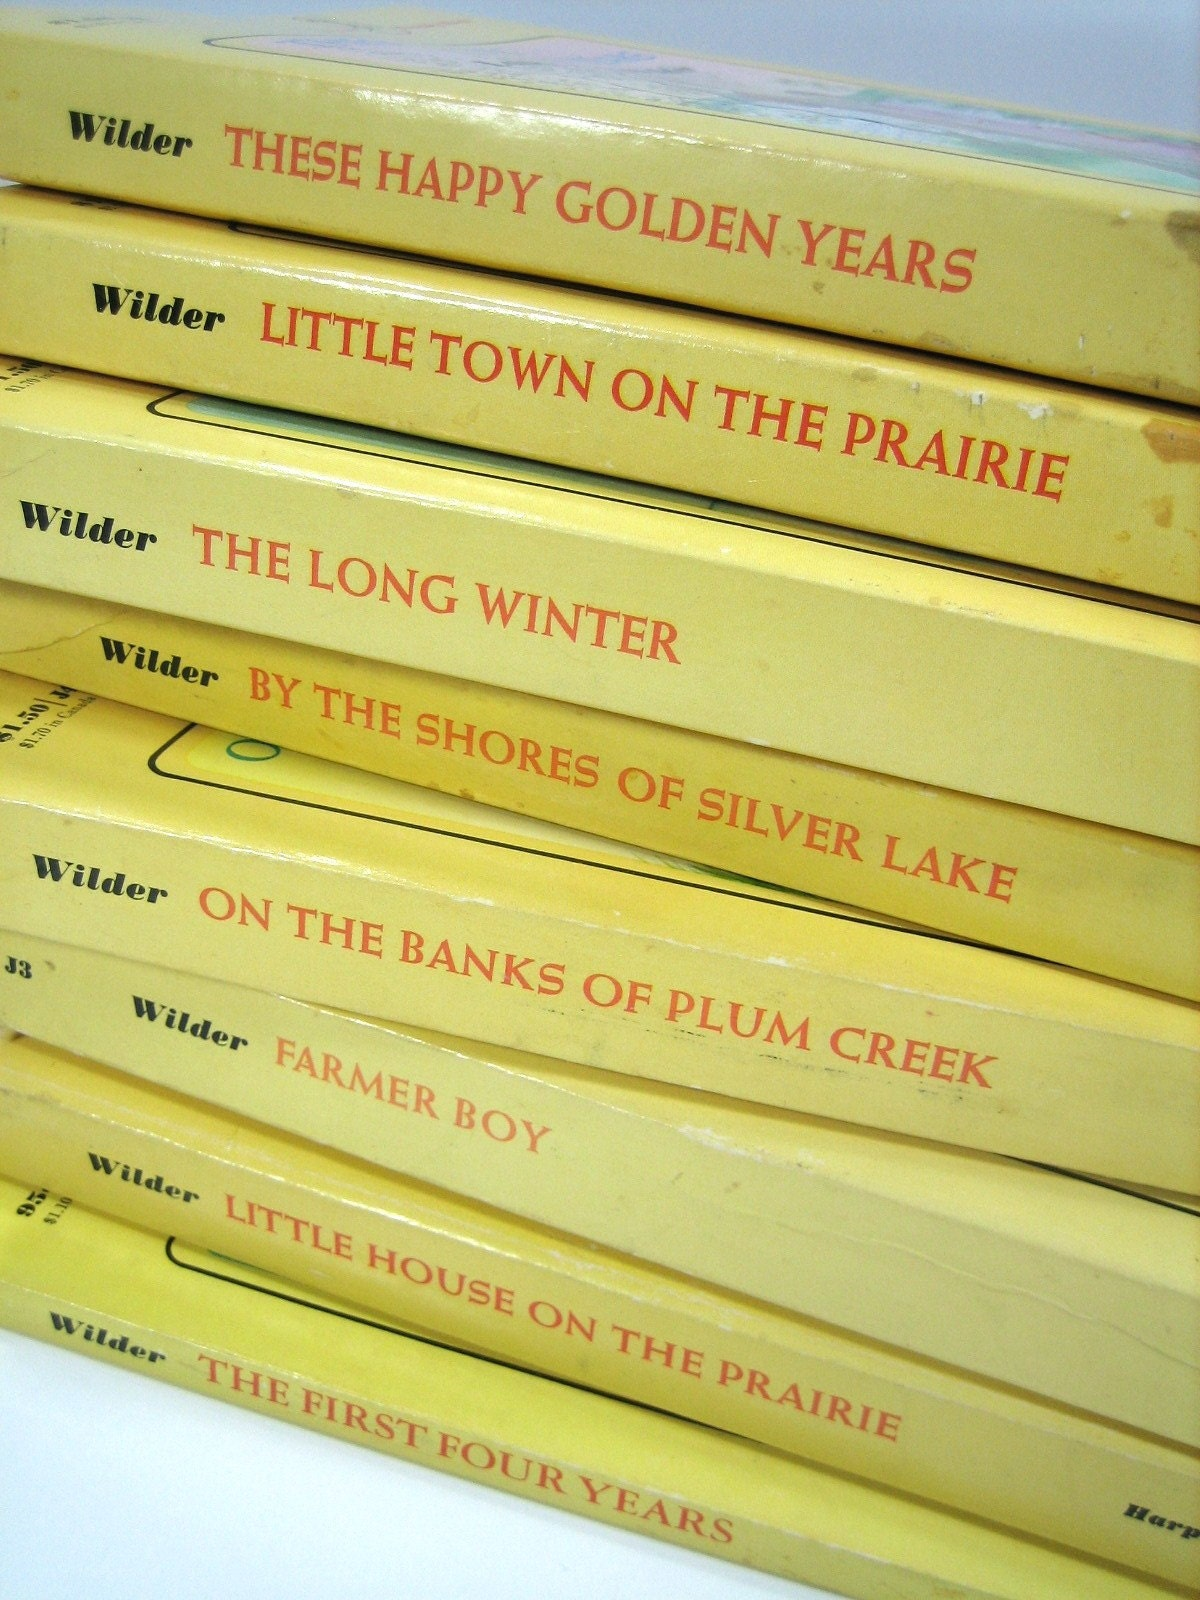 Little House on the Prairie.  Complete Book Set.  1971.